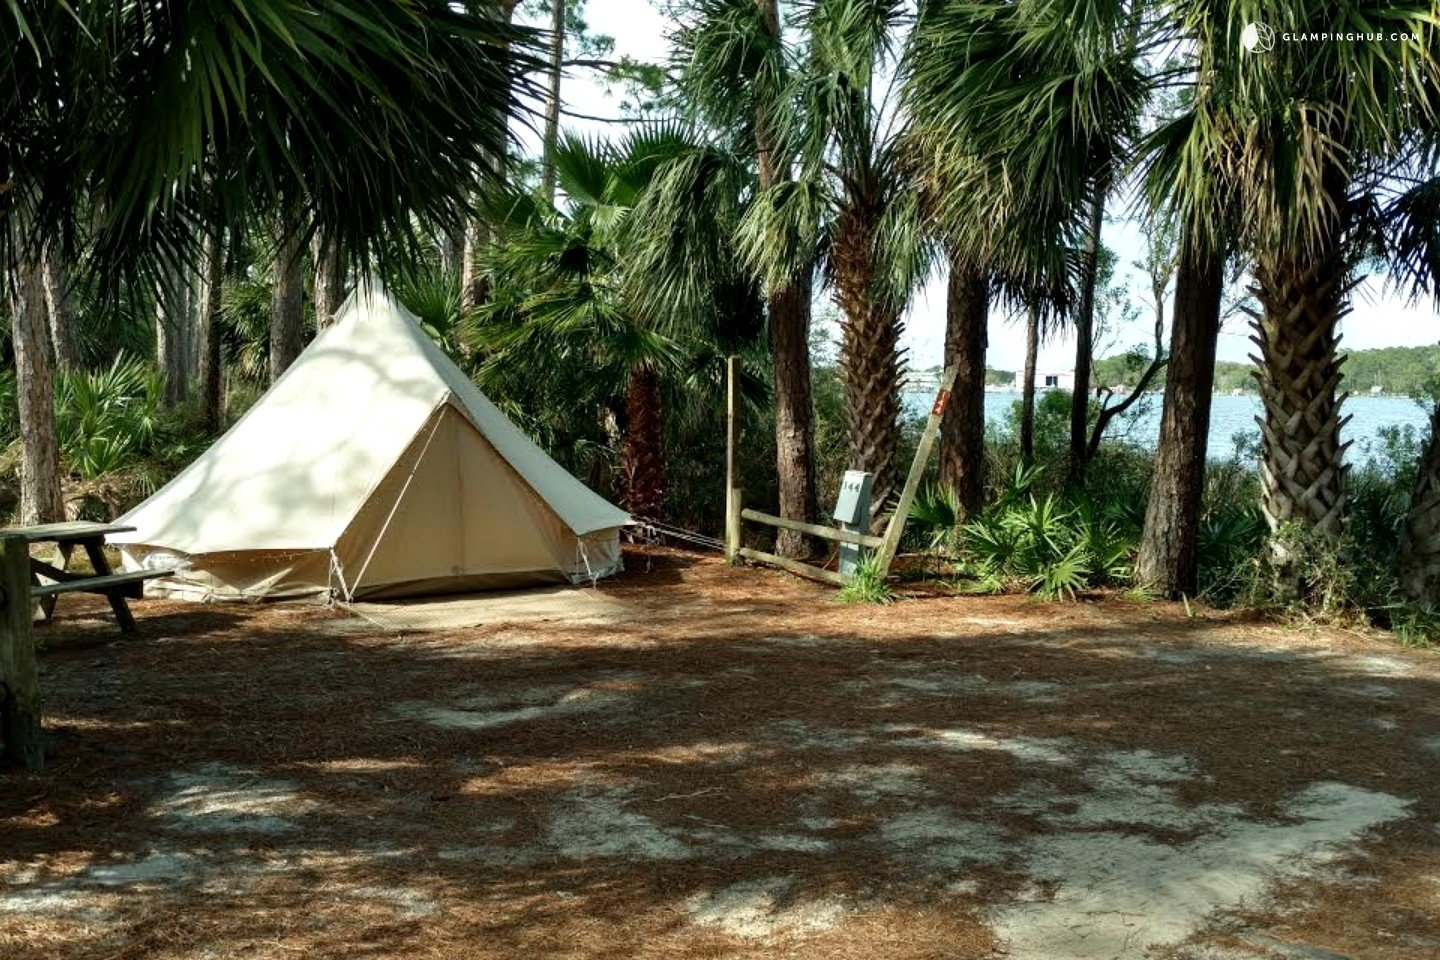 Campground near panama city beach for Nearby campgrounds with cabins